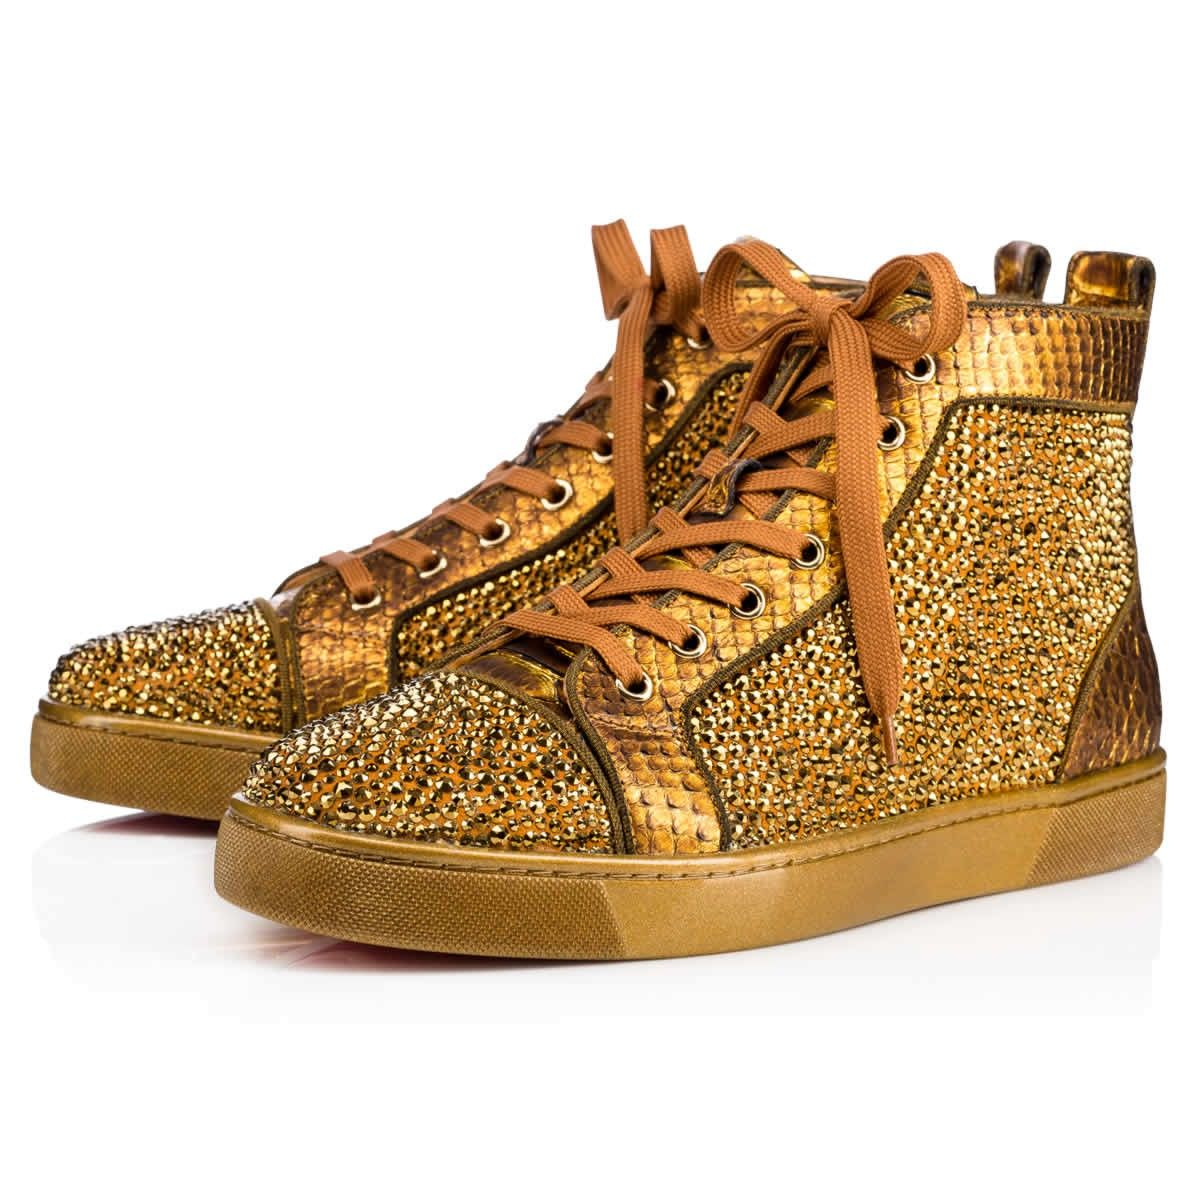 5d6b73cfe5fc CHRISTIAN LOUBOUTIN LOUIS VEAU VELOURS PYTHON PAVE STRASS Antic Gold Python  - Men Shoes - Christian Louboutin.  christianlouboutin  shoes